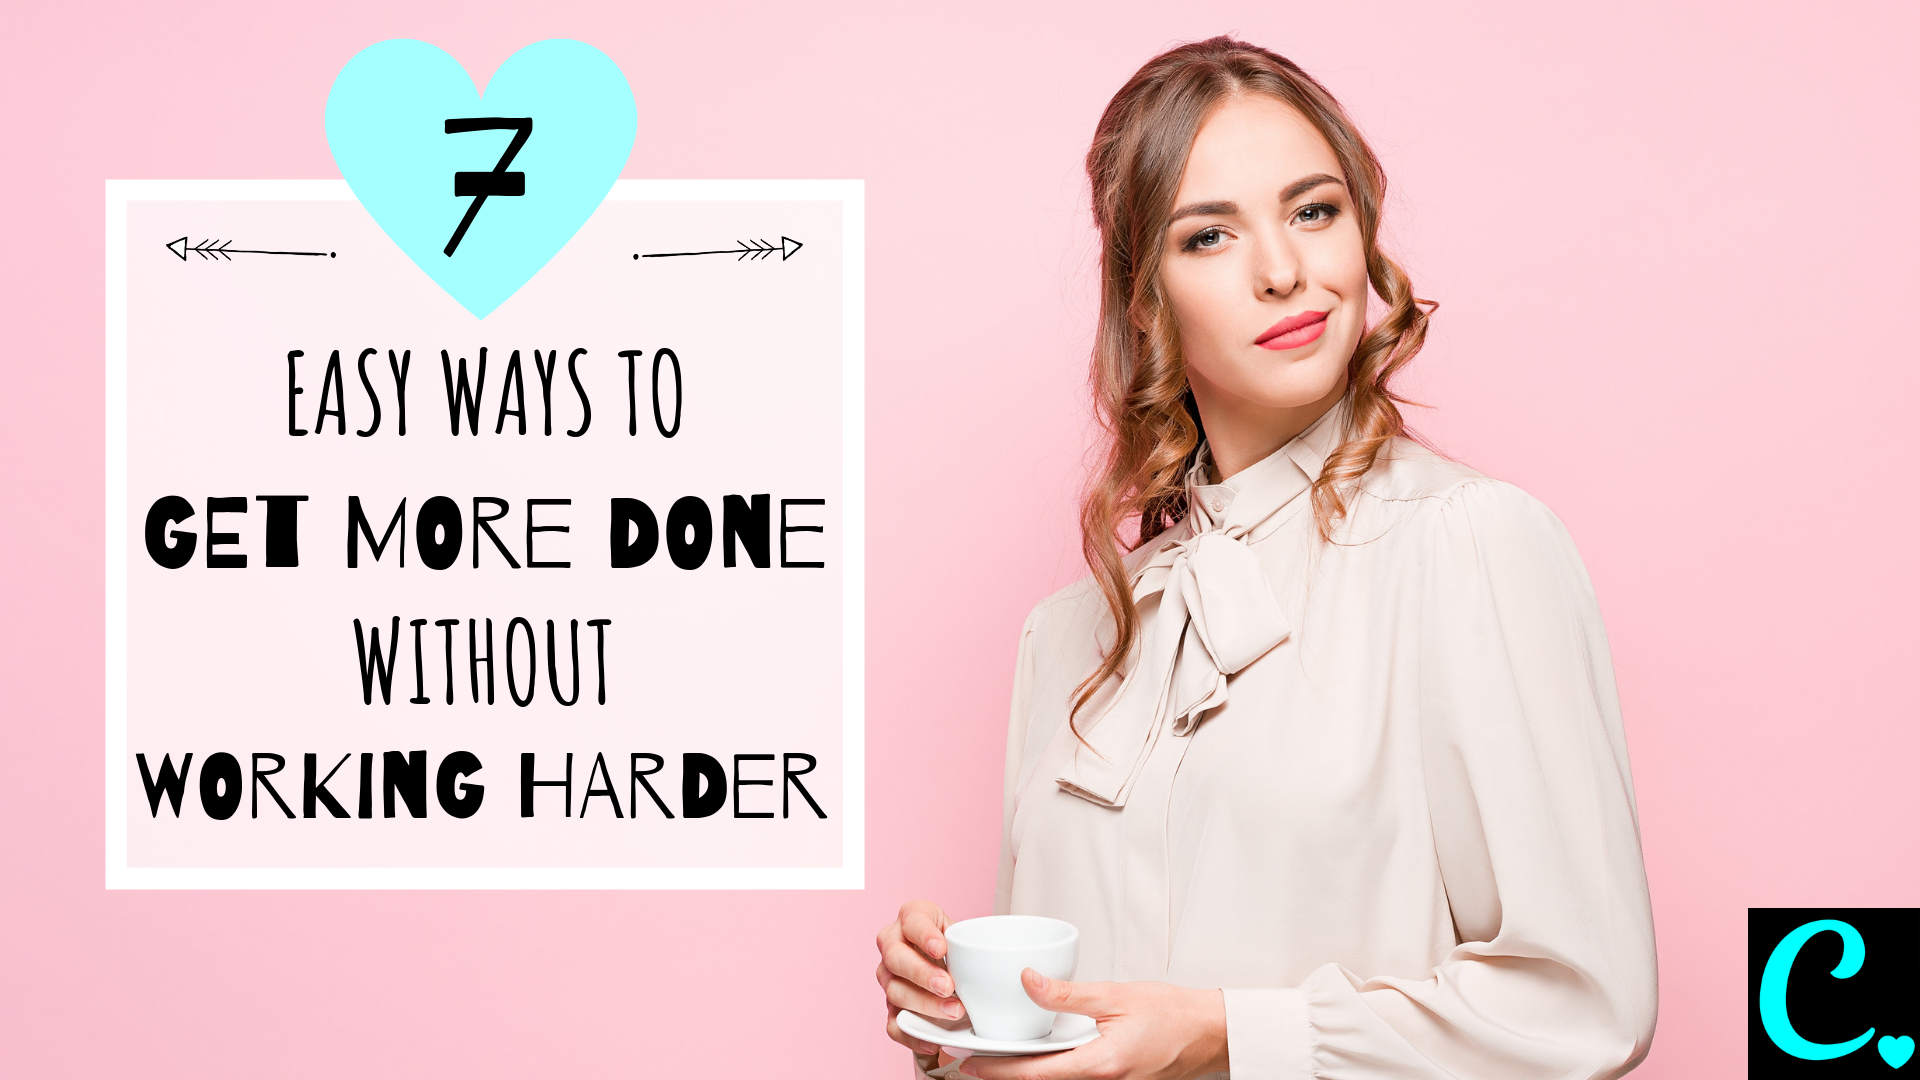 7 Ways to Get More Done Without Working Harder | Productivity Tiips | How to be productive | Work smarter Not Harder | Via: https://captivatingcrazy.com #captivatingcrazy #howtobeproductive #productivitytips #productivityhacks